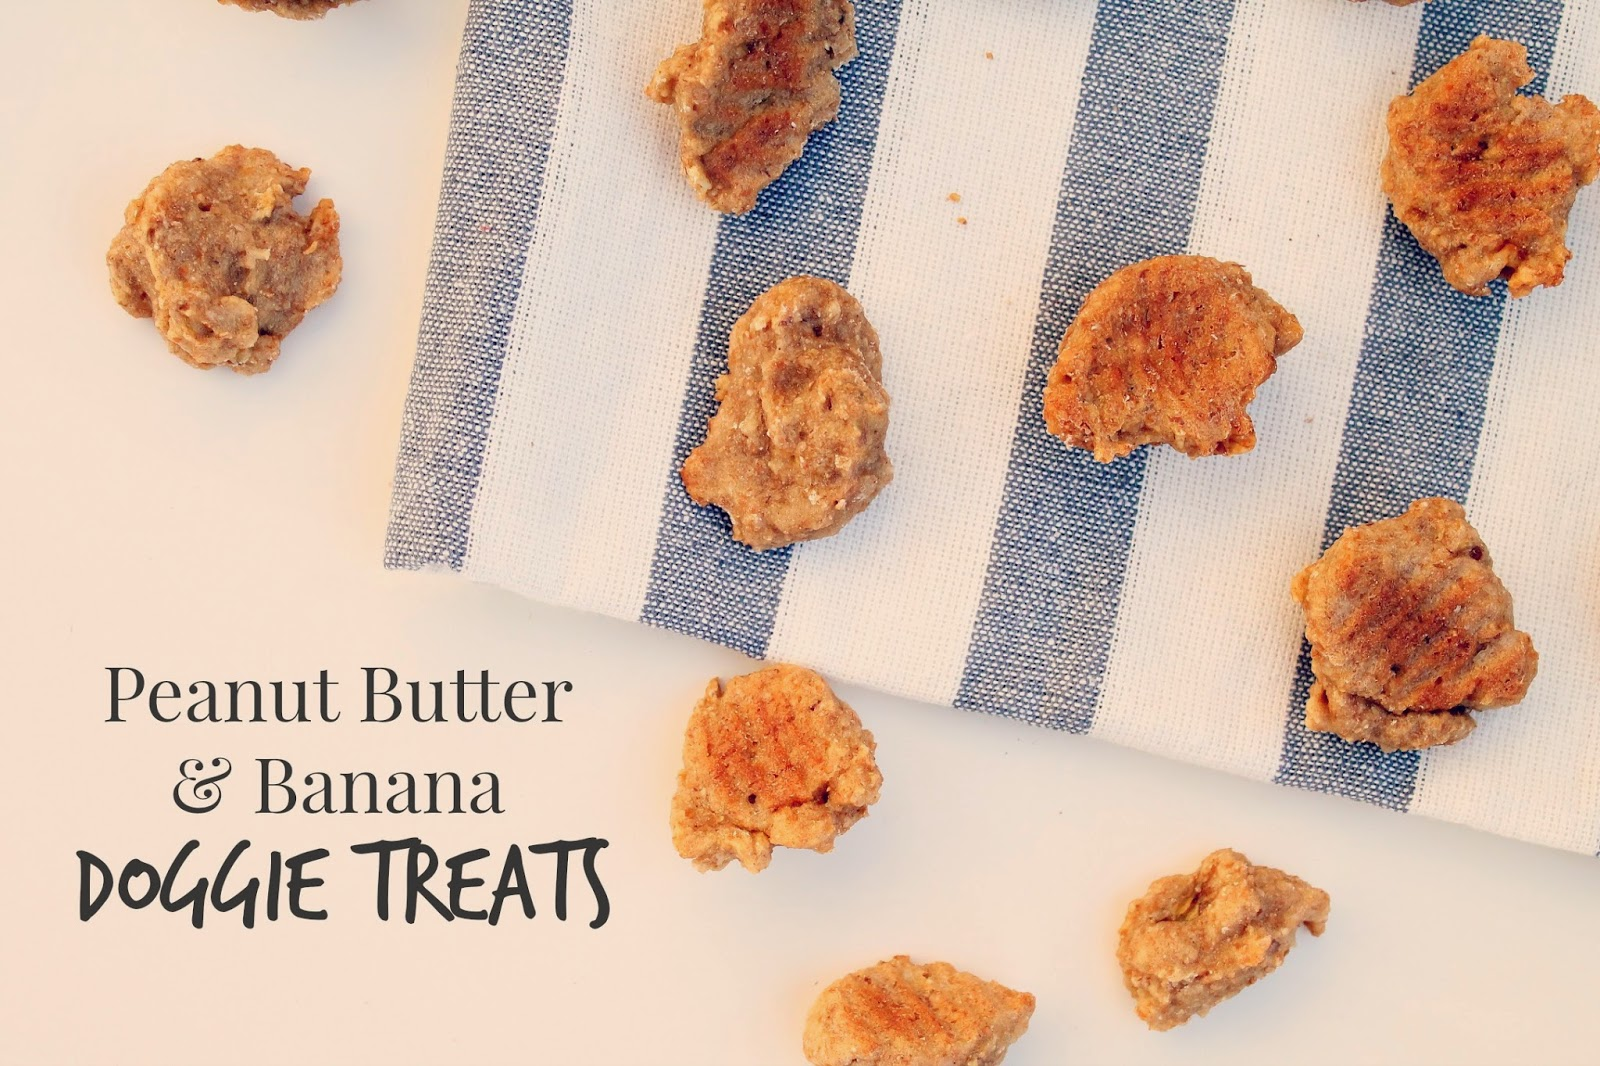 Peanut Butter & Banana Doggie Treats via @labride